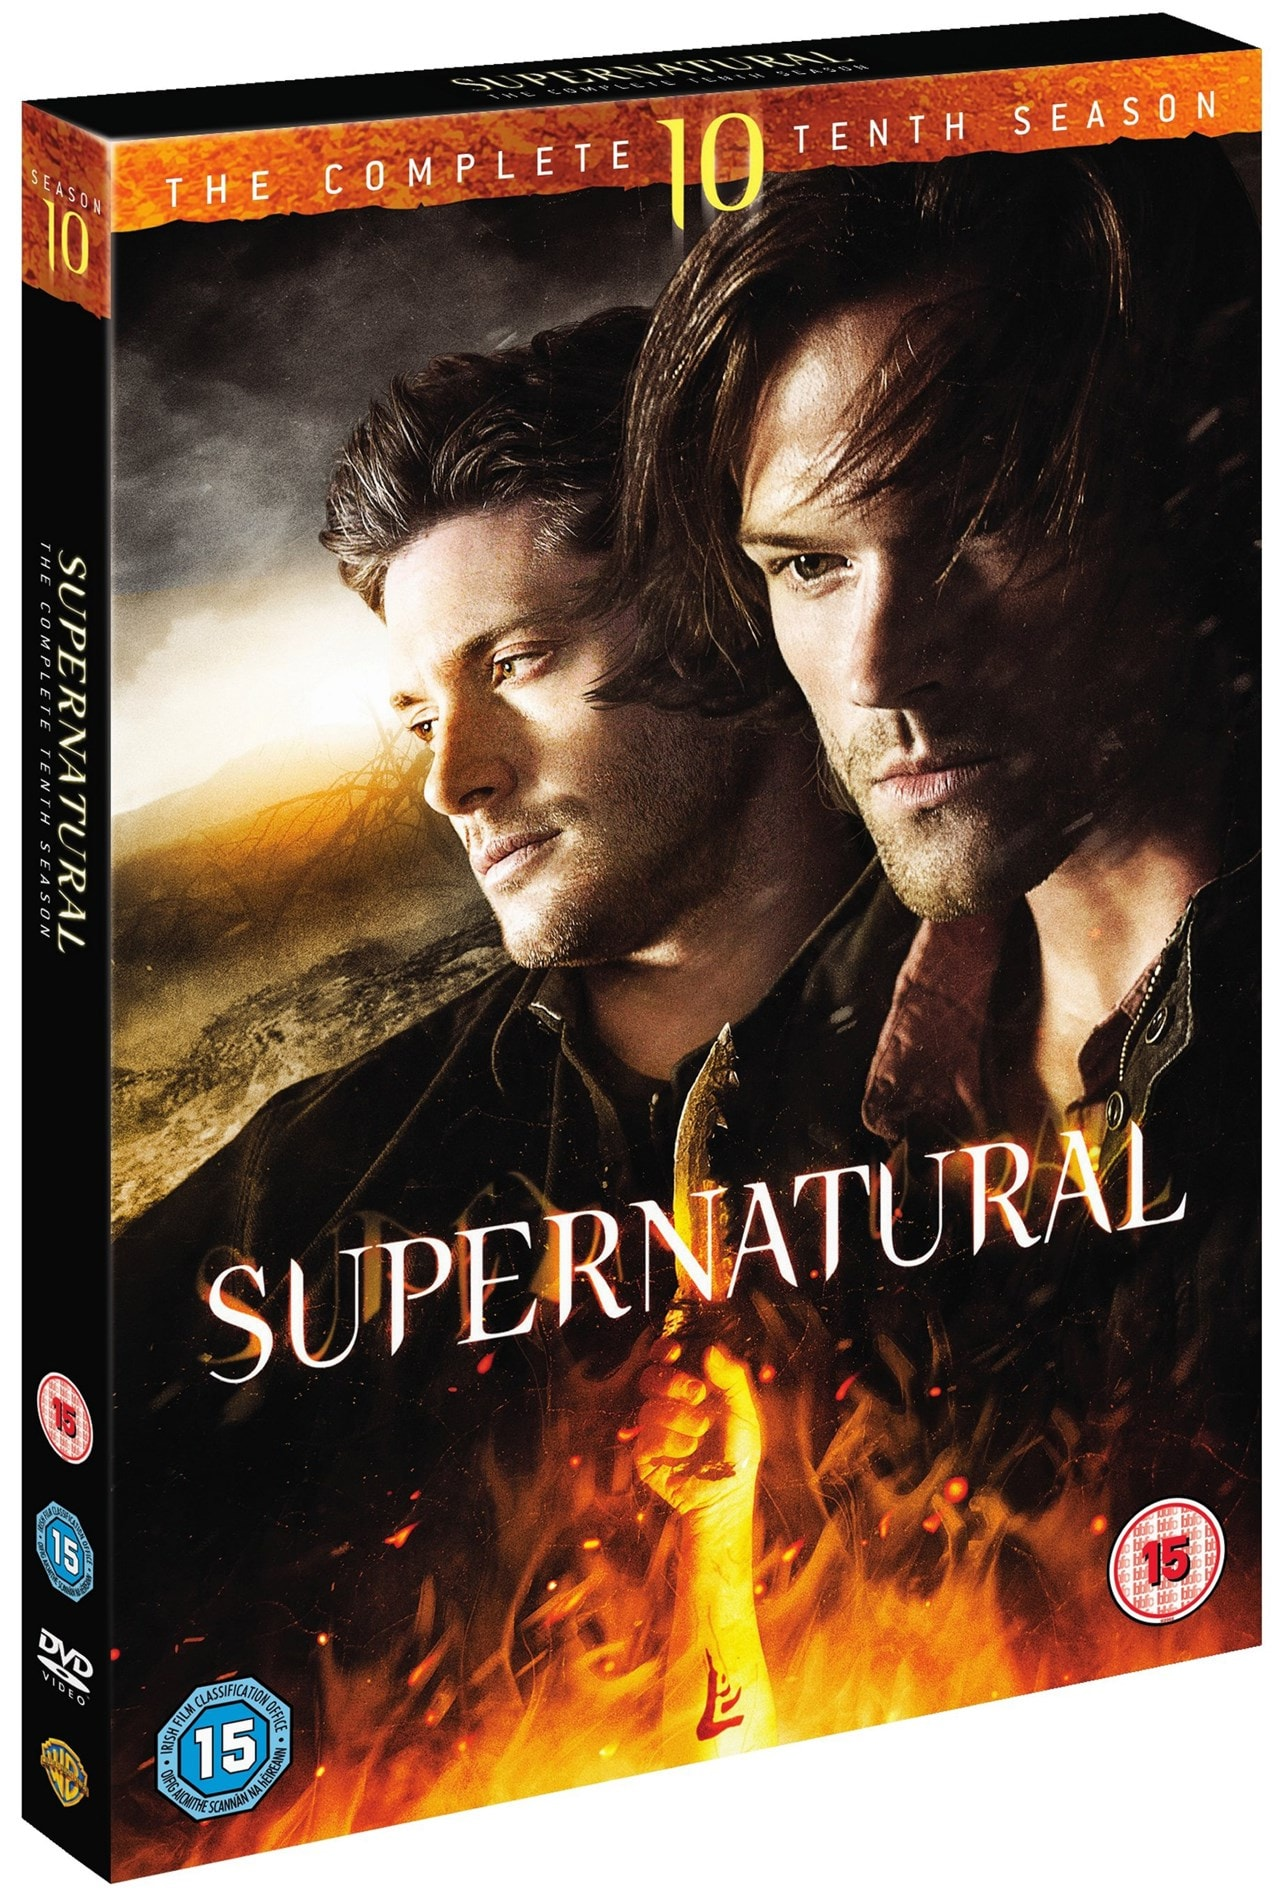 Supernatural: The Complete Tenth Season - 2